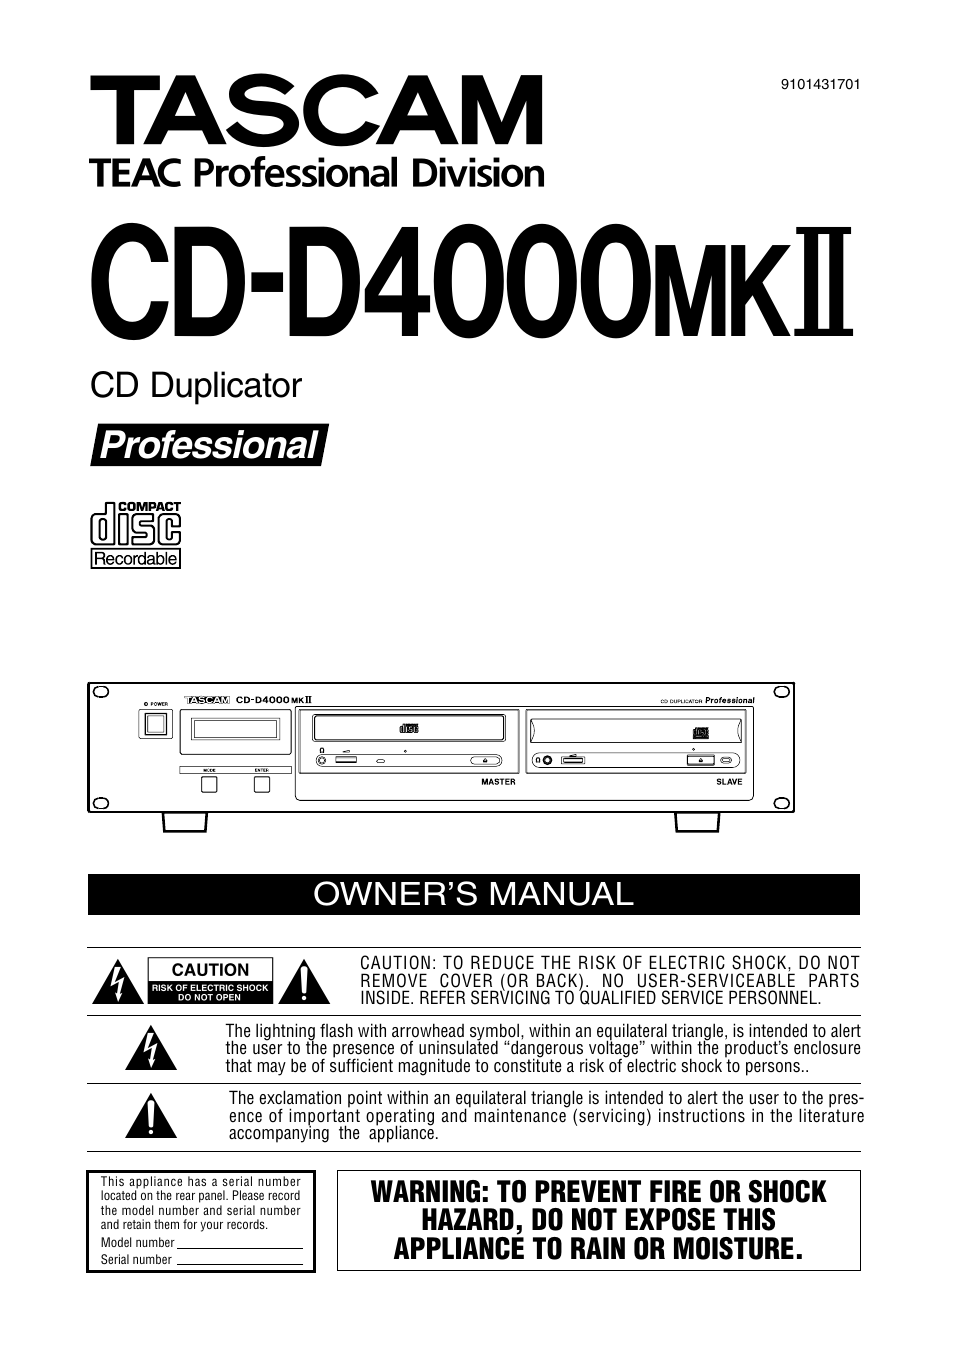 Tascam cd rw2000 service manual tascam cd dj1 array tascam cd d4000 mkii user manual 12 pages rh manualsdir fandeluxe Choice Image